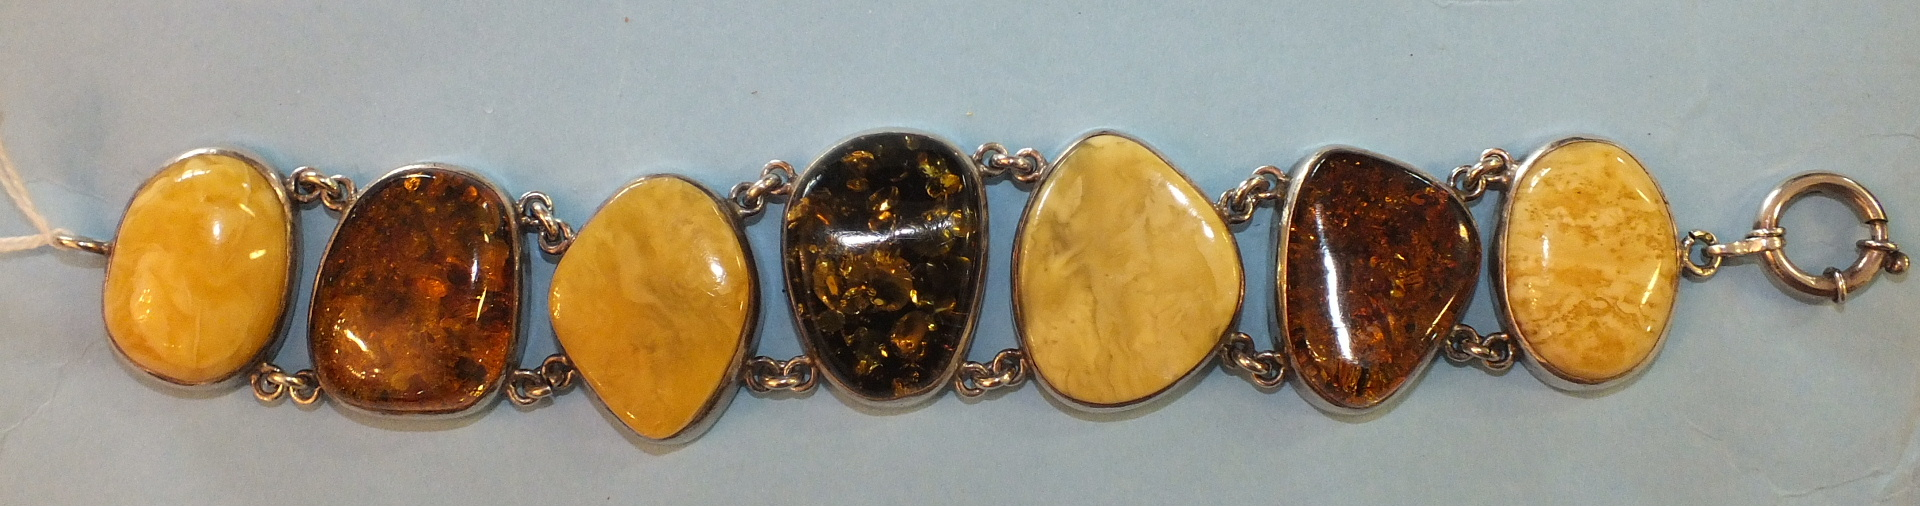 Lot 186 - A bracelet of seven amber plaques of irregular shape set in silver, marked '925', with bolt-ring